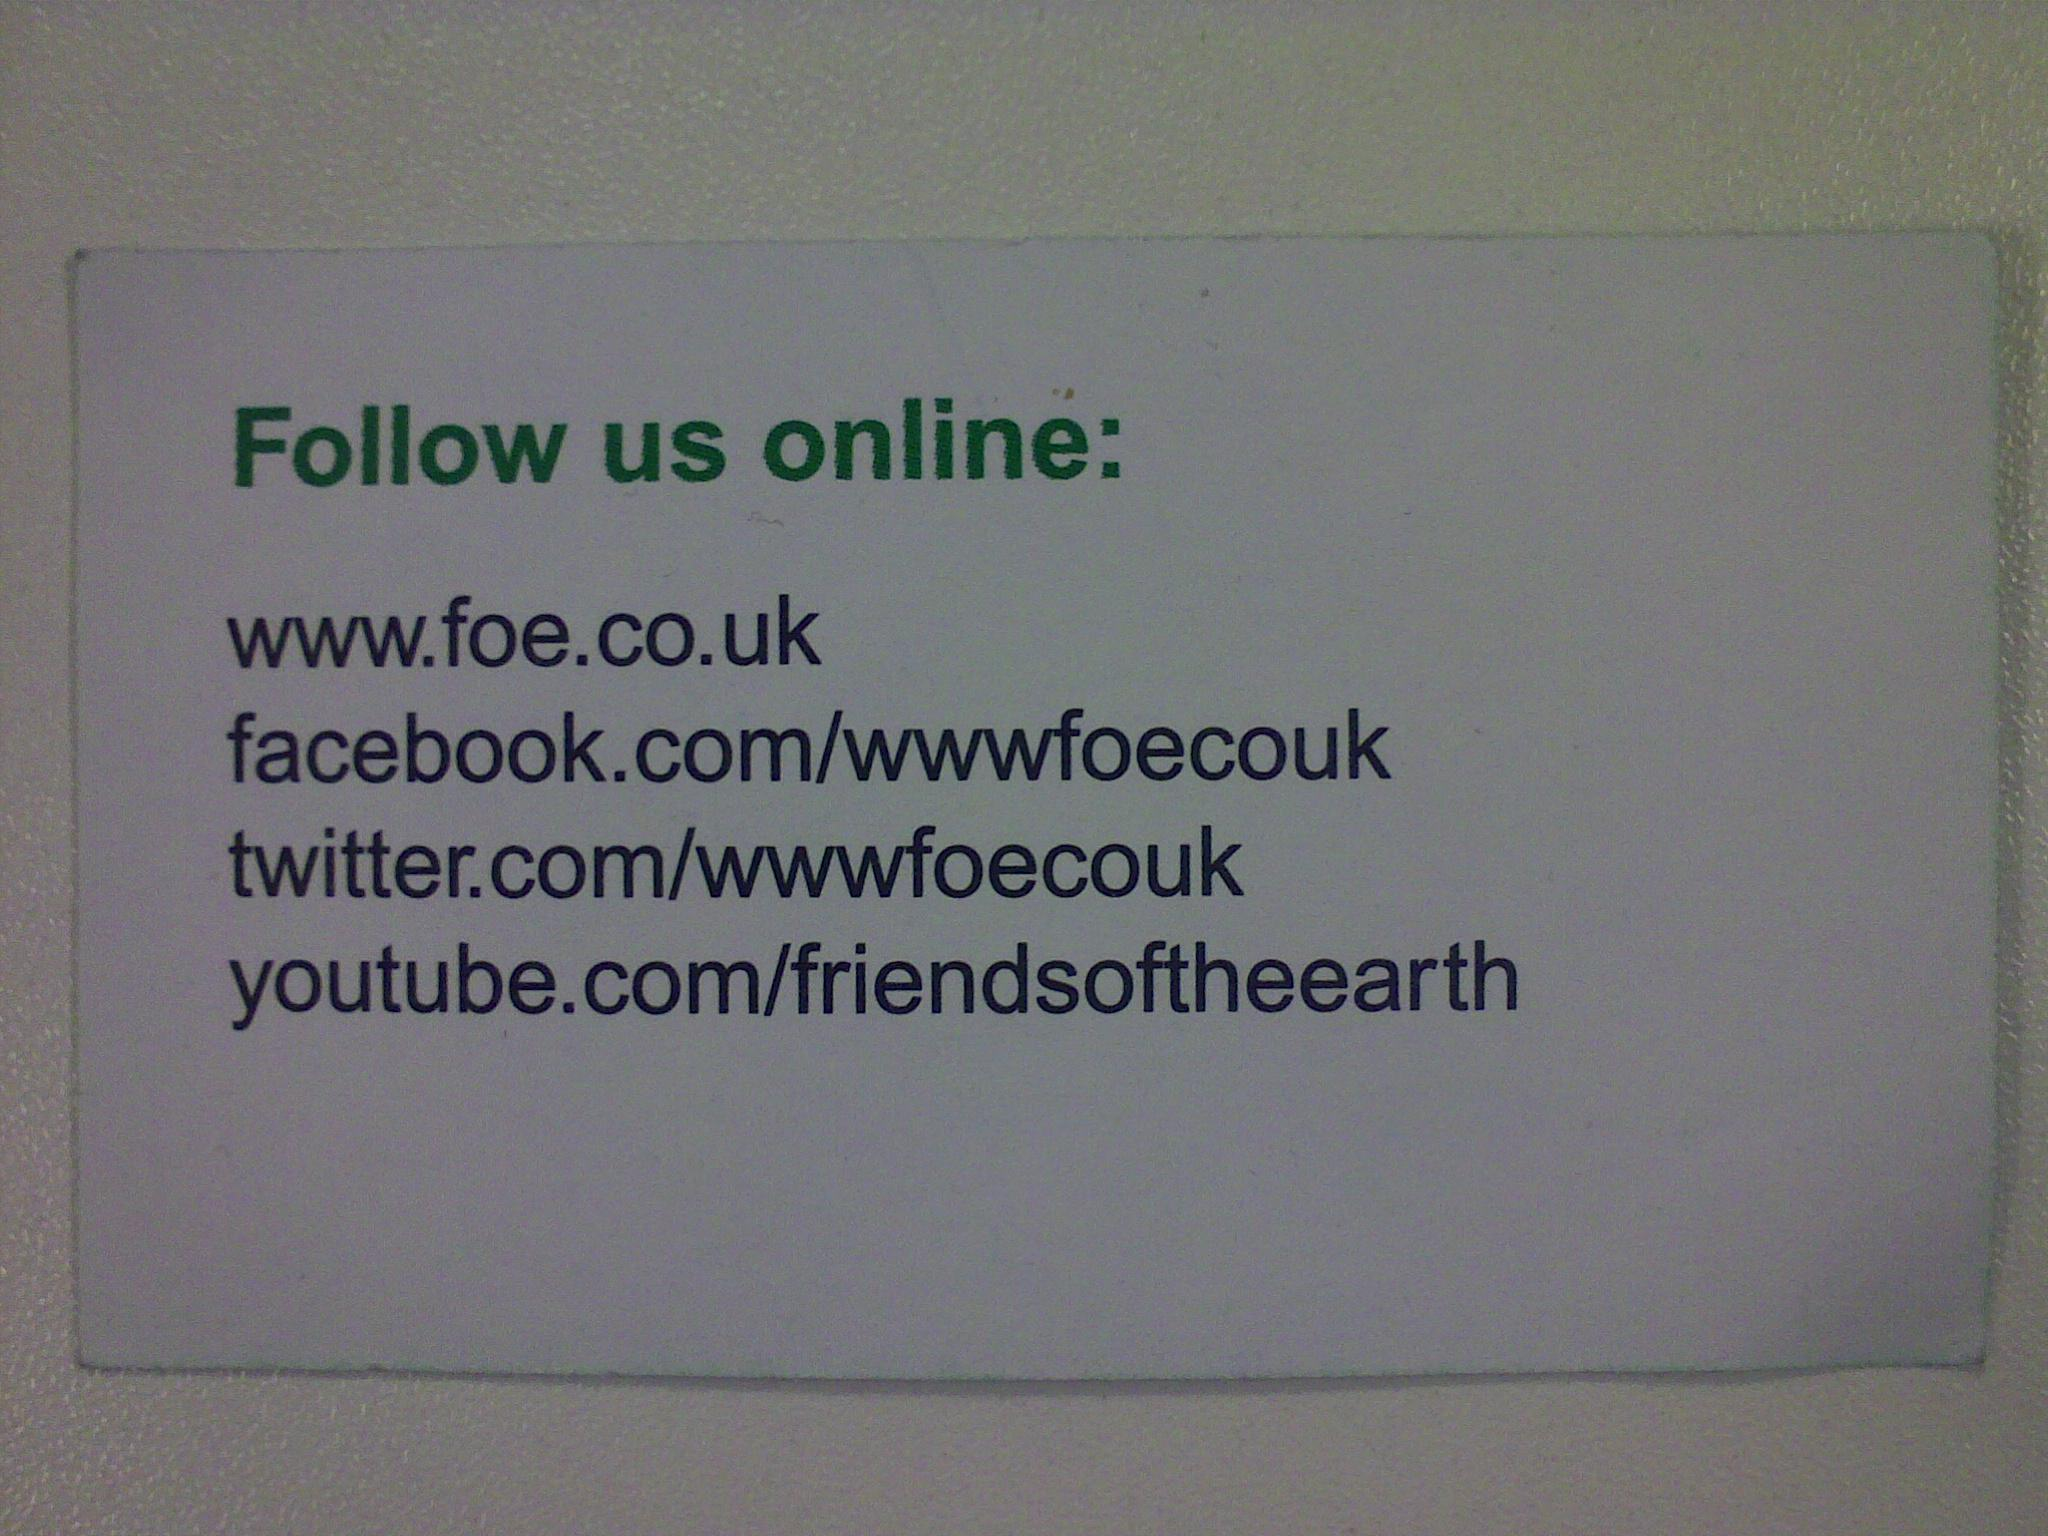 Friends of the Earth Business Card – Ironic or Clever Marketing